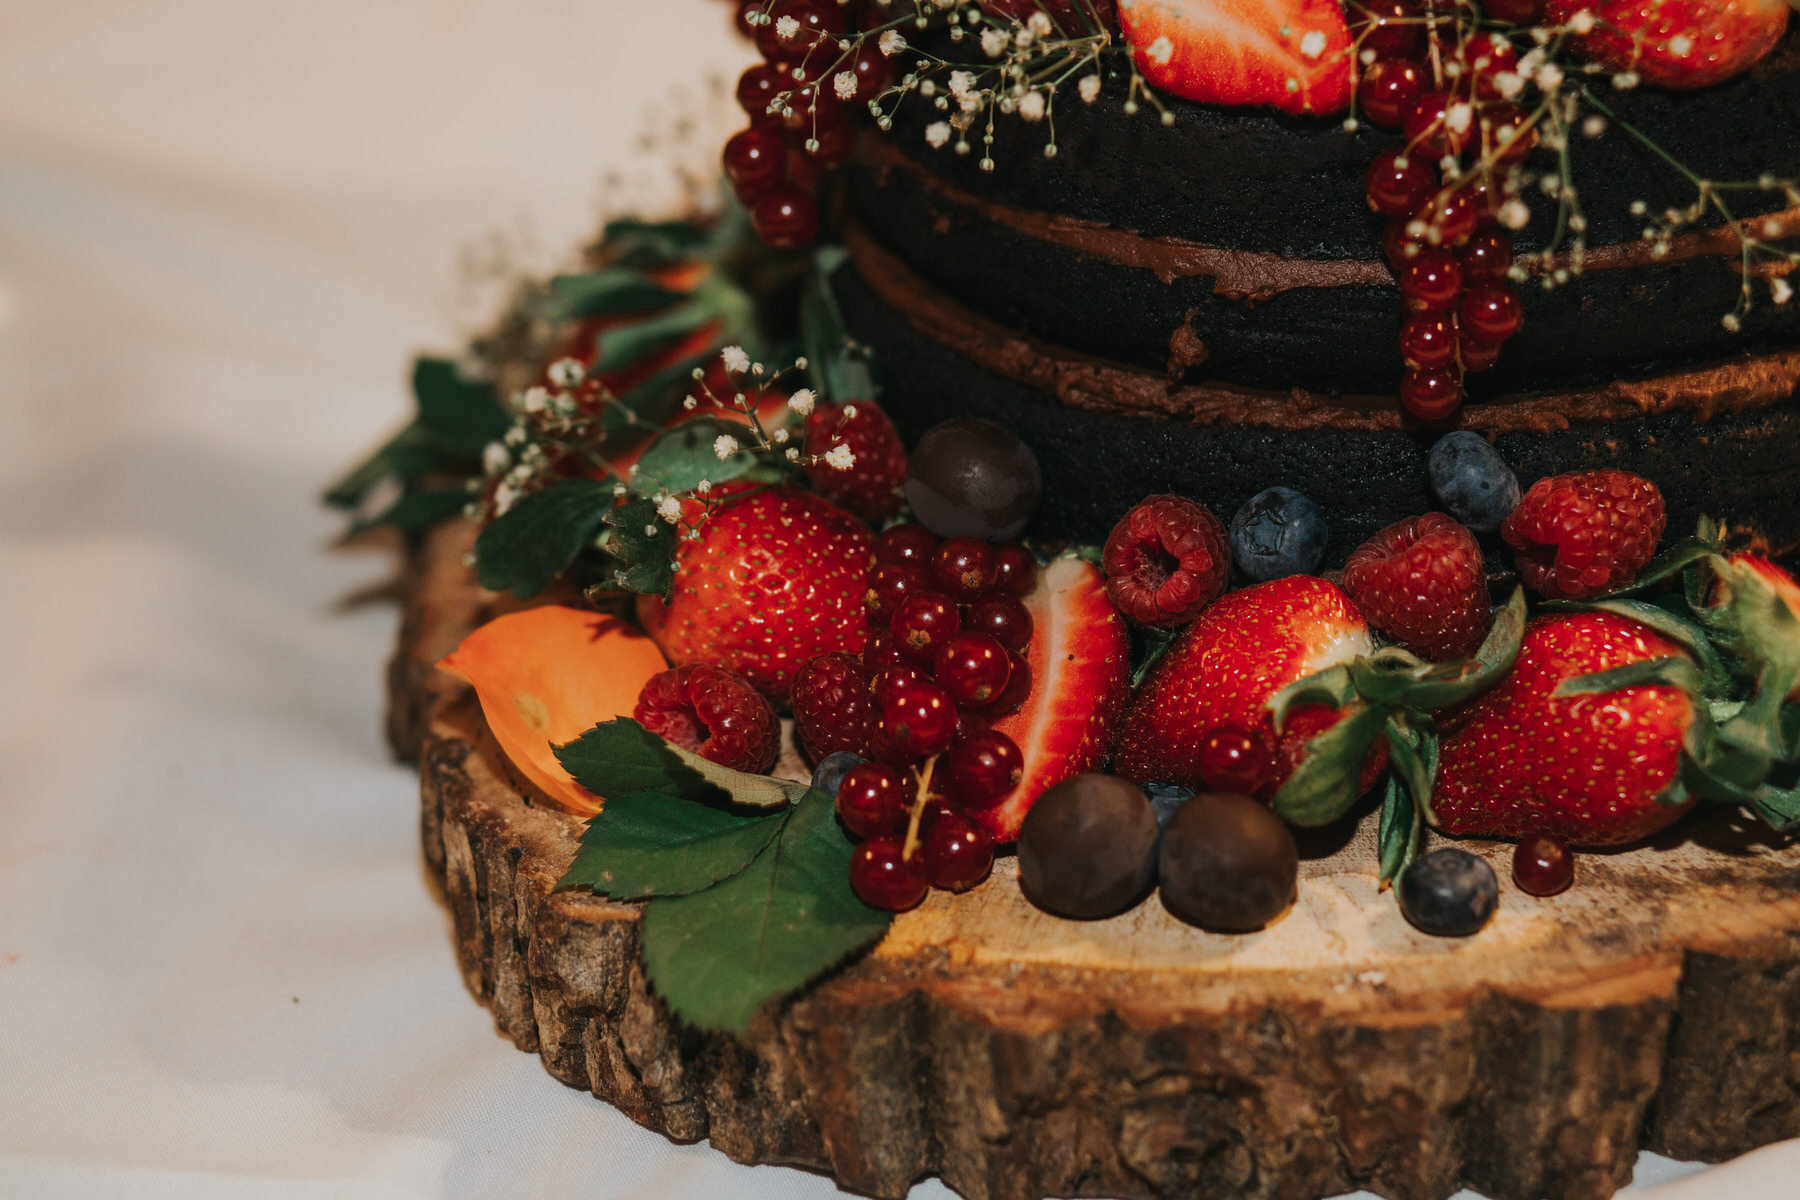 146.2-St Chads Place chocolate wedding cake decorated strawberries berries babies breath wooden board.jpg